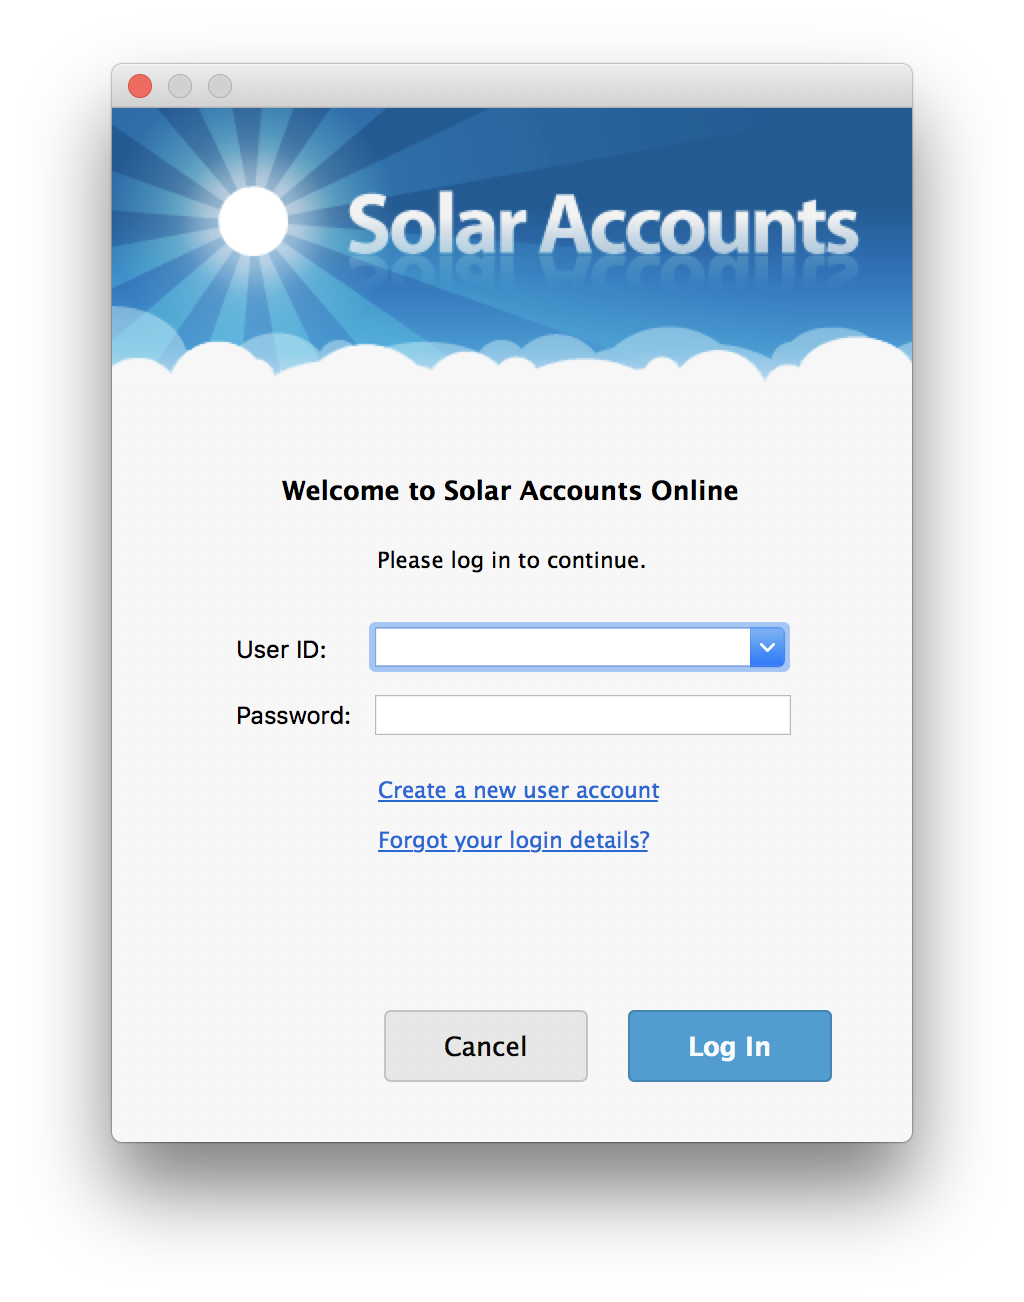 Screenshot of Solar Accounts Online login screen